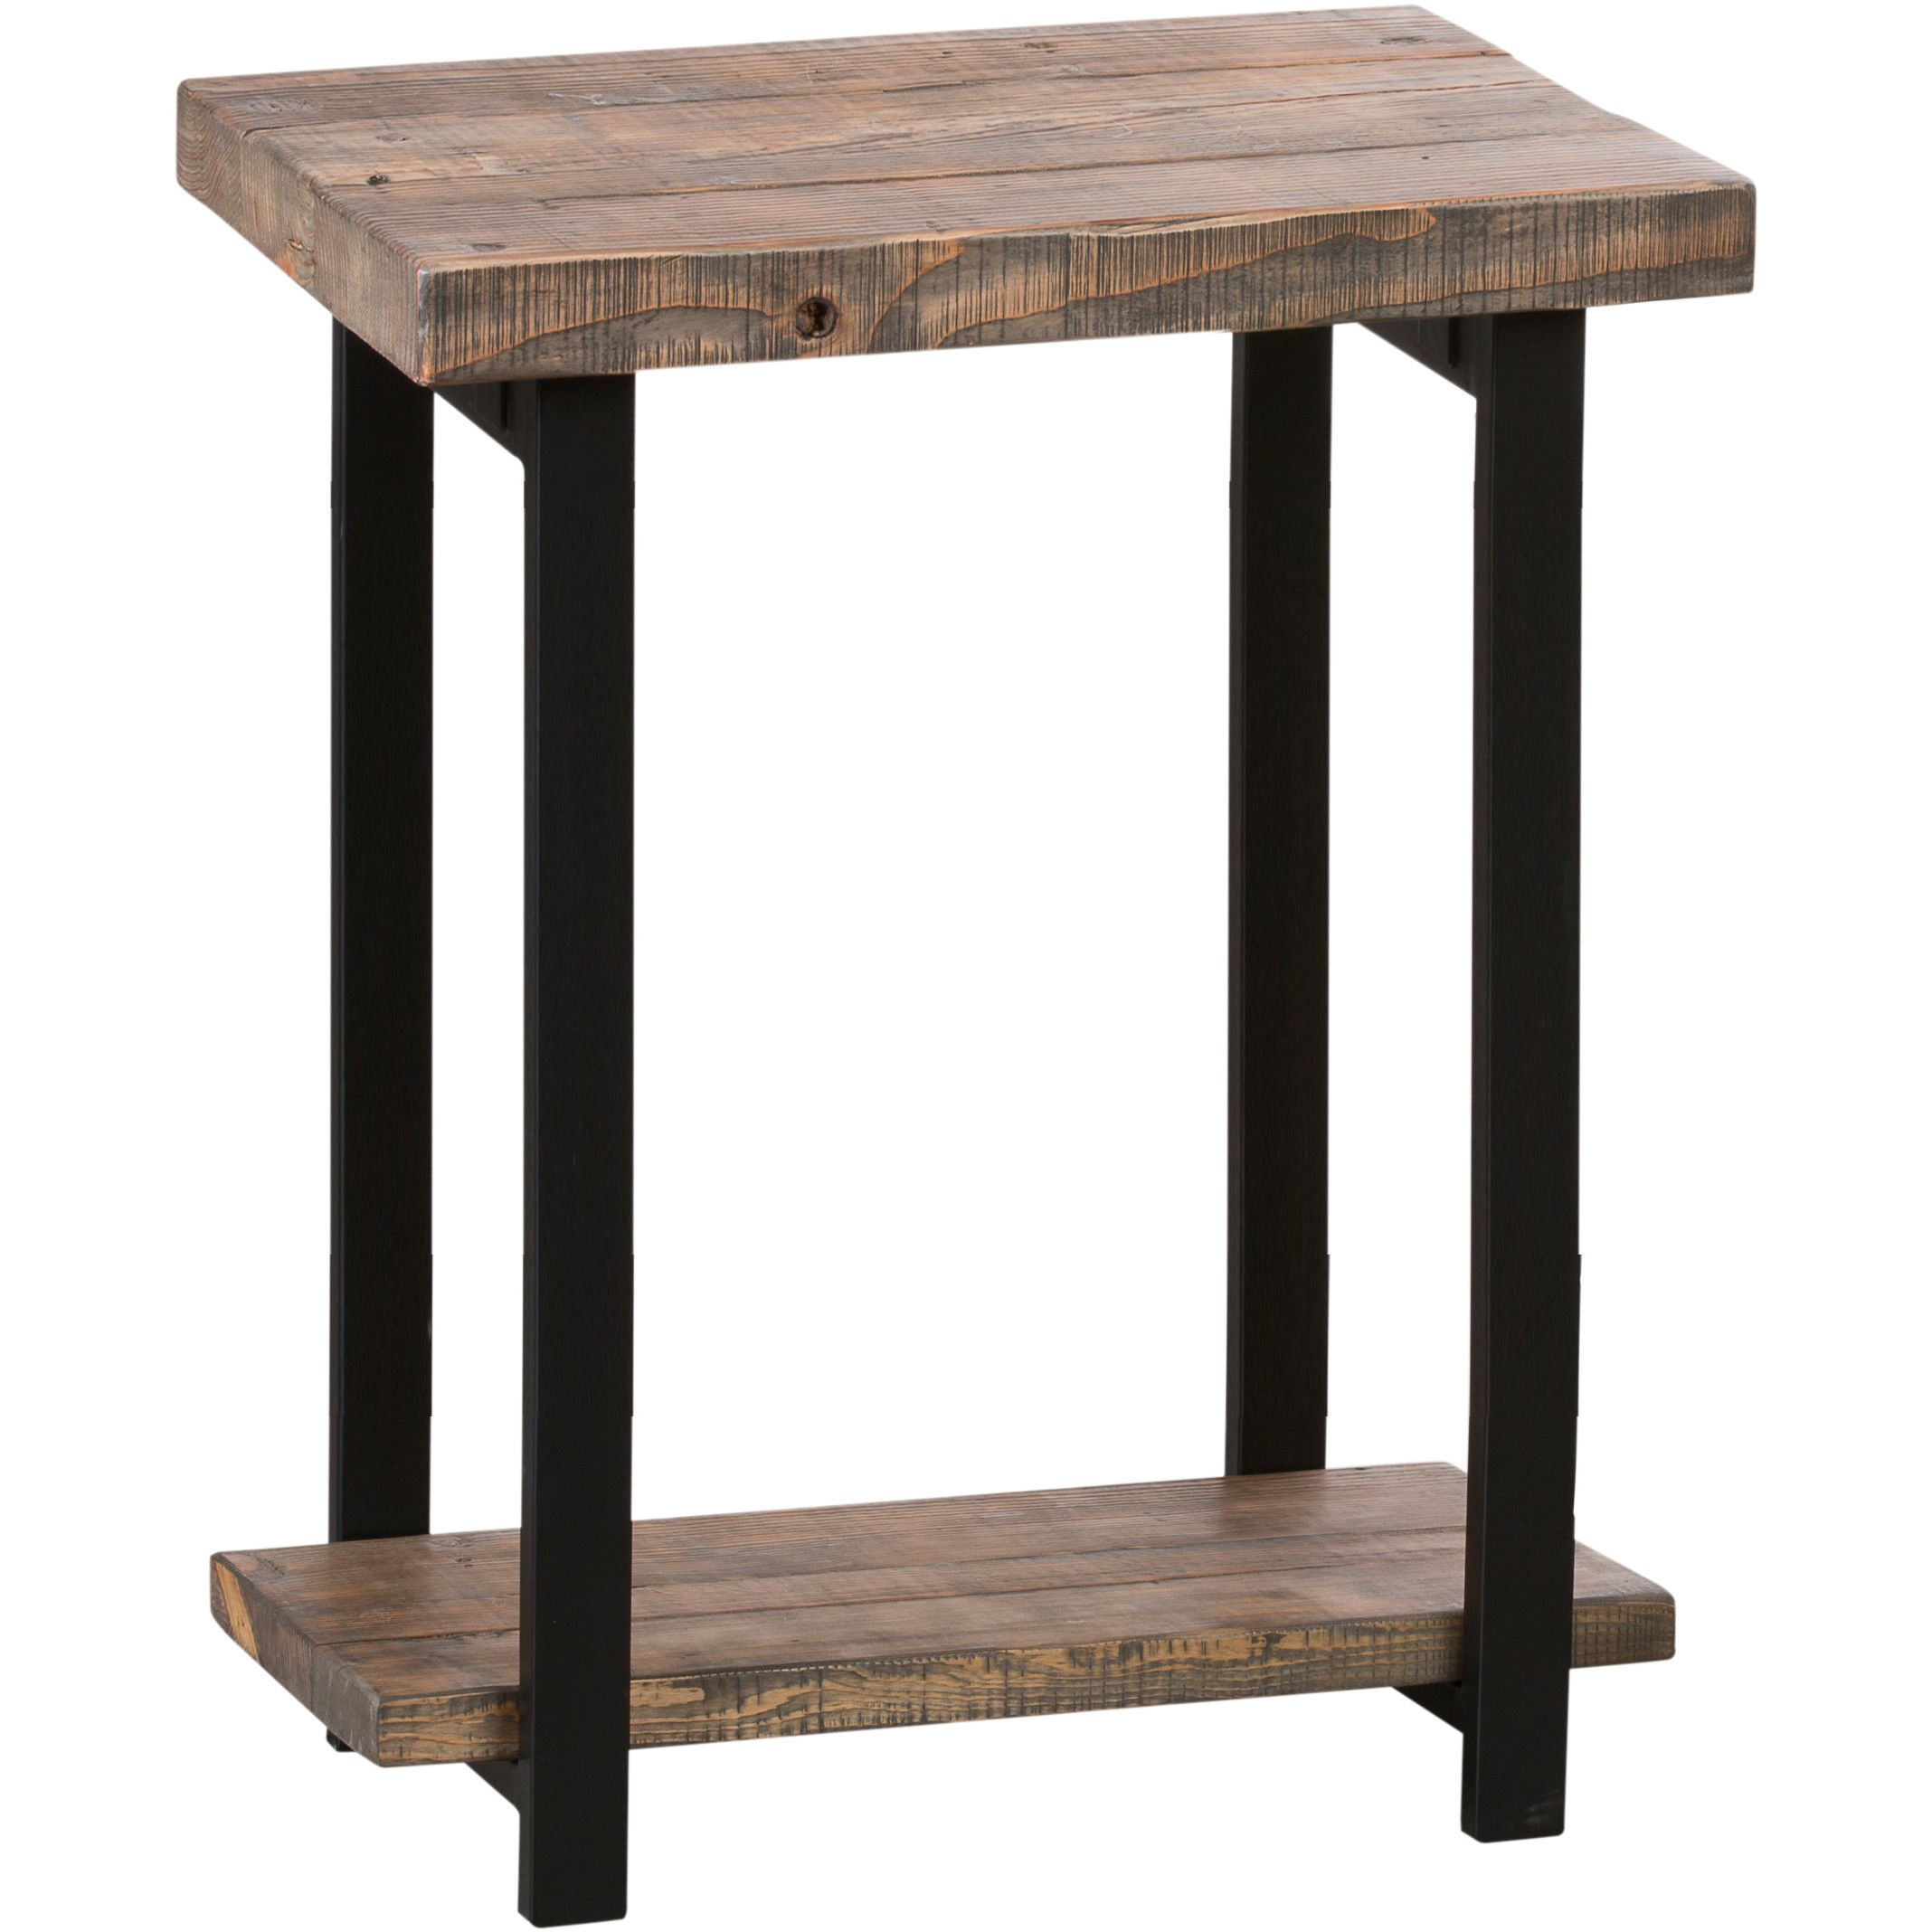 Somers End Table   Metals, Woods and Room decor